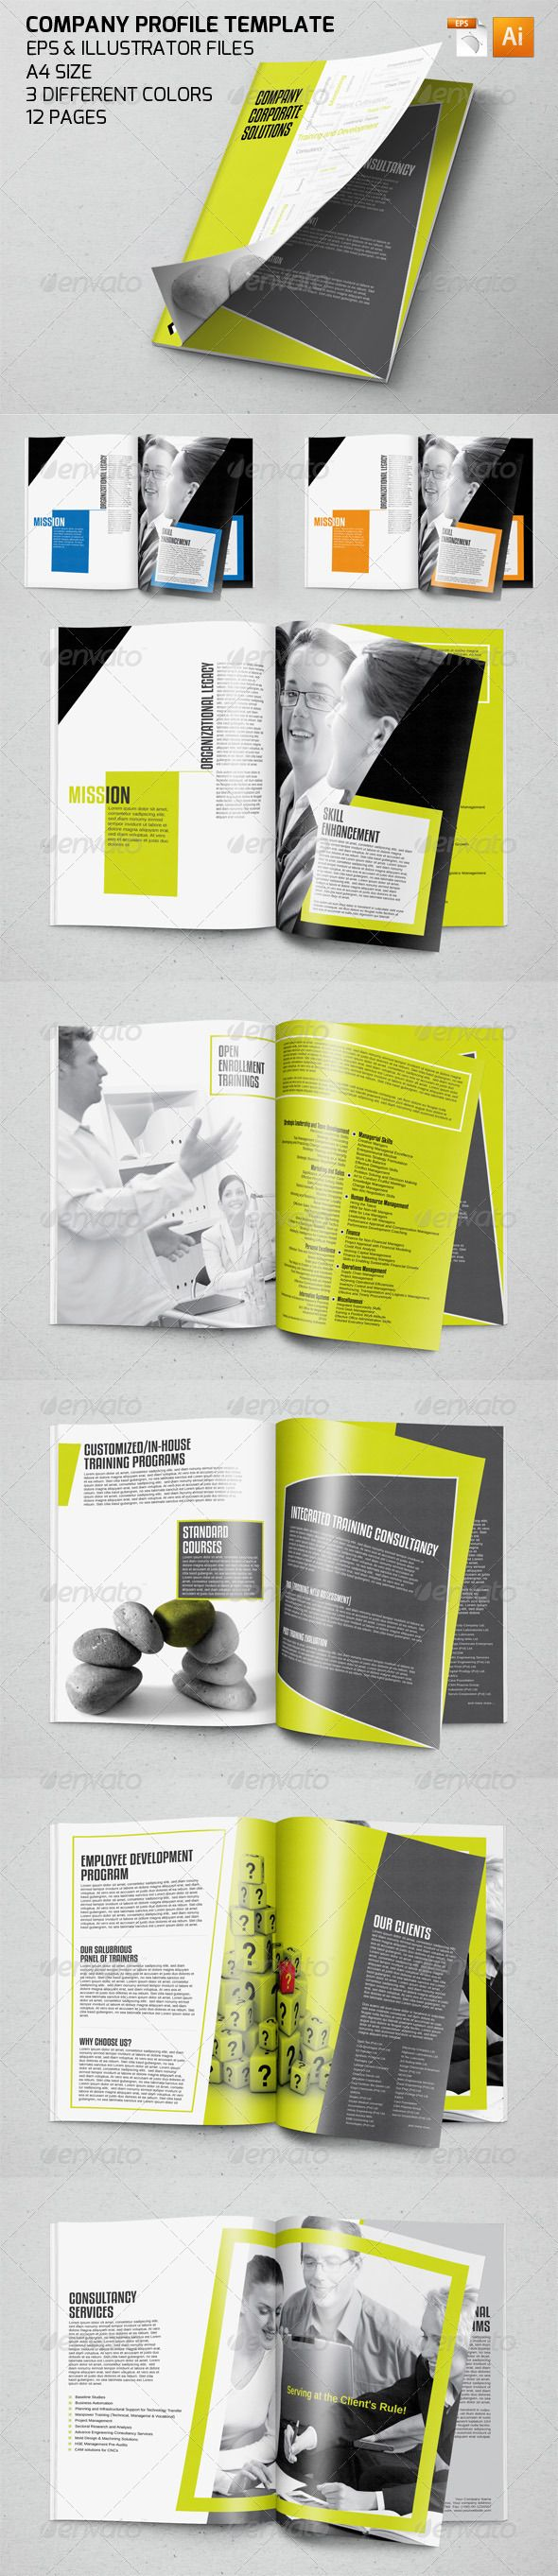 Professional company profile template corporate brochures professional company profile template corporate brochures company profile template company profile design corporate accmission